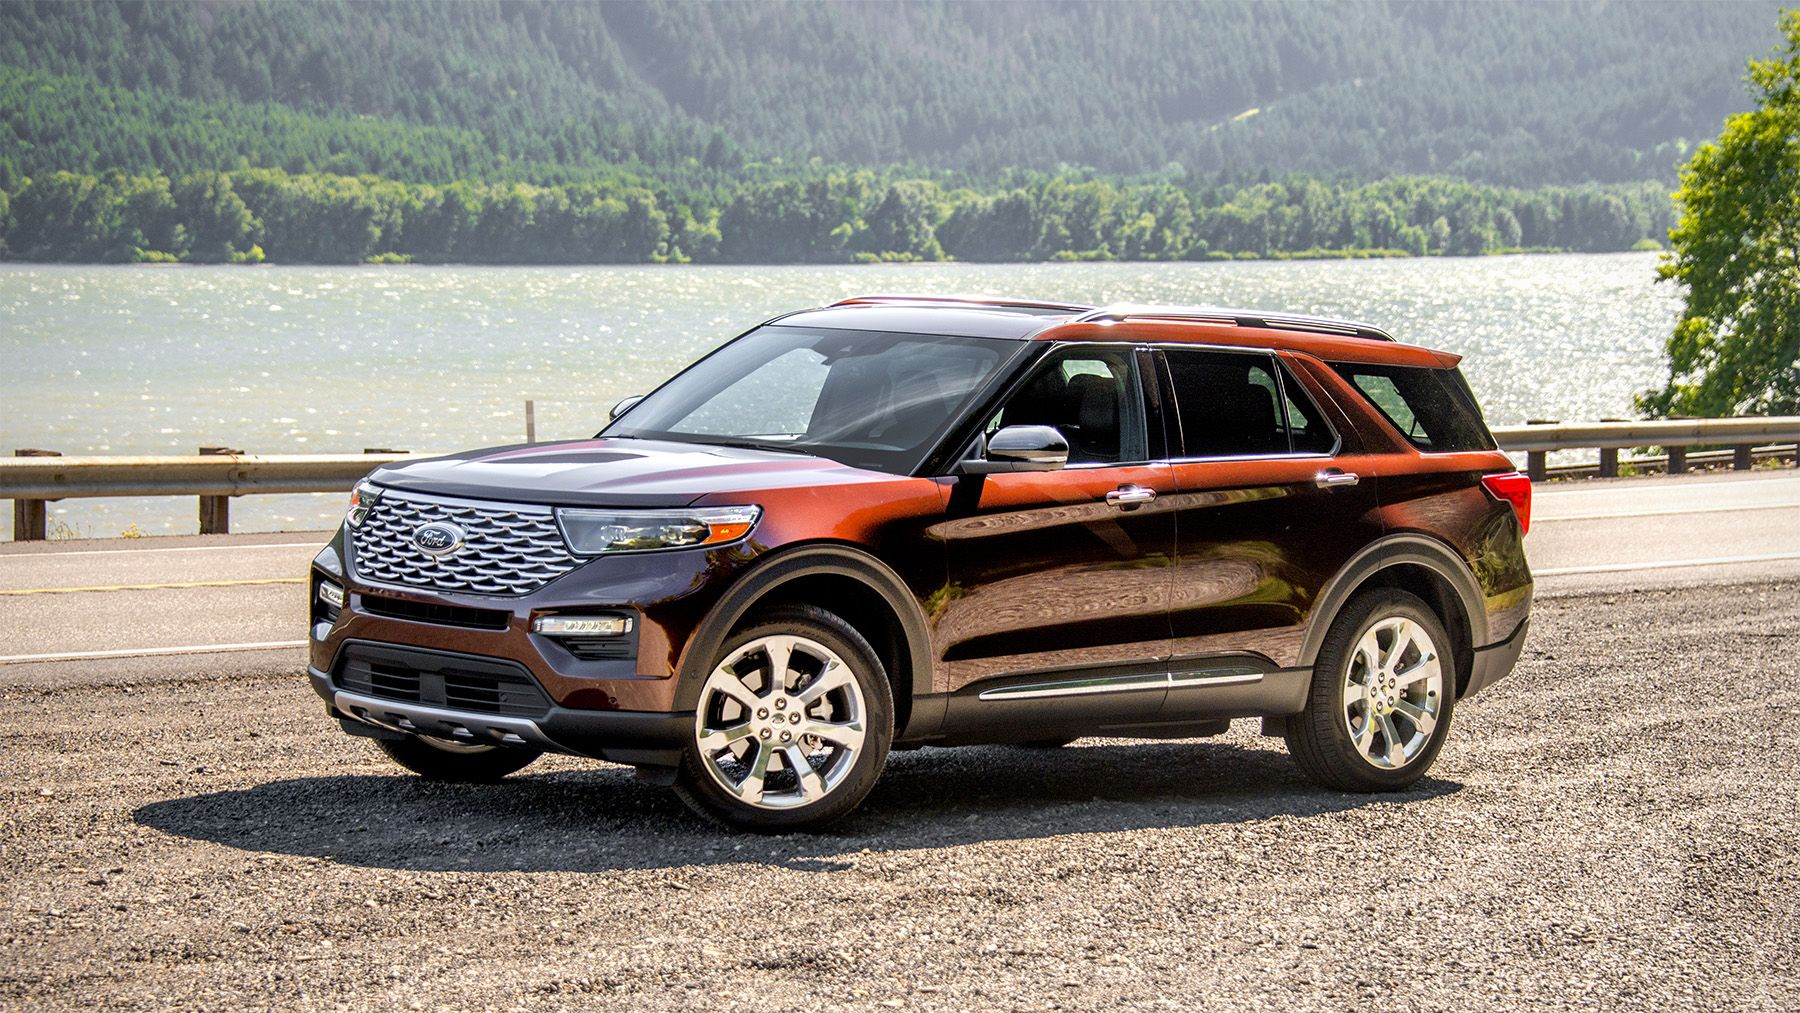 2020 Ford Explorer Review Driving Impressions Specs Safety Tech Options Price And Photos